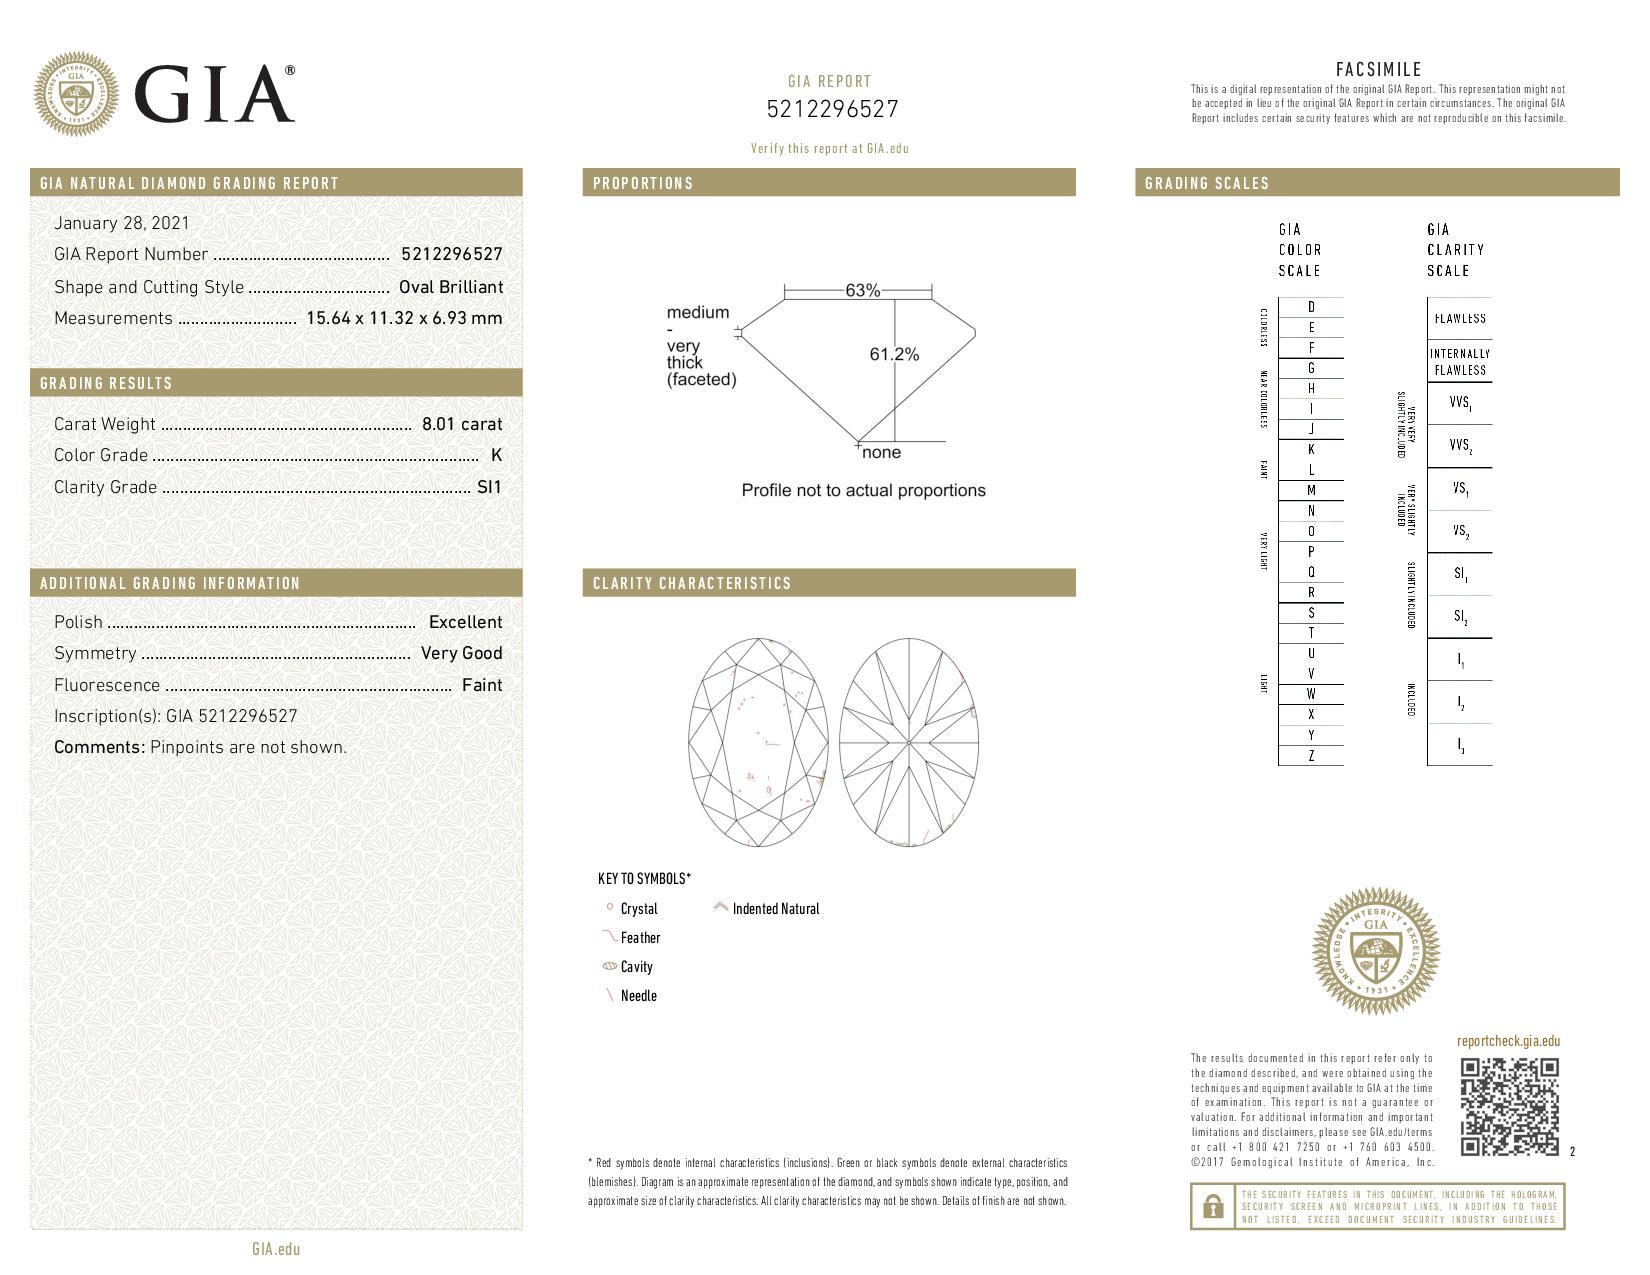 This is a 8.01 carat oval shape, K color, SI1 clarity natural diamond accompanied by a GIA grading report.